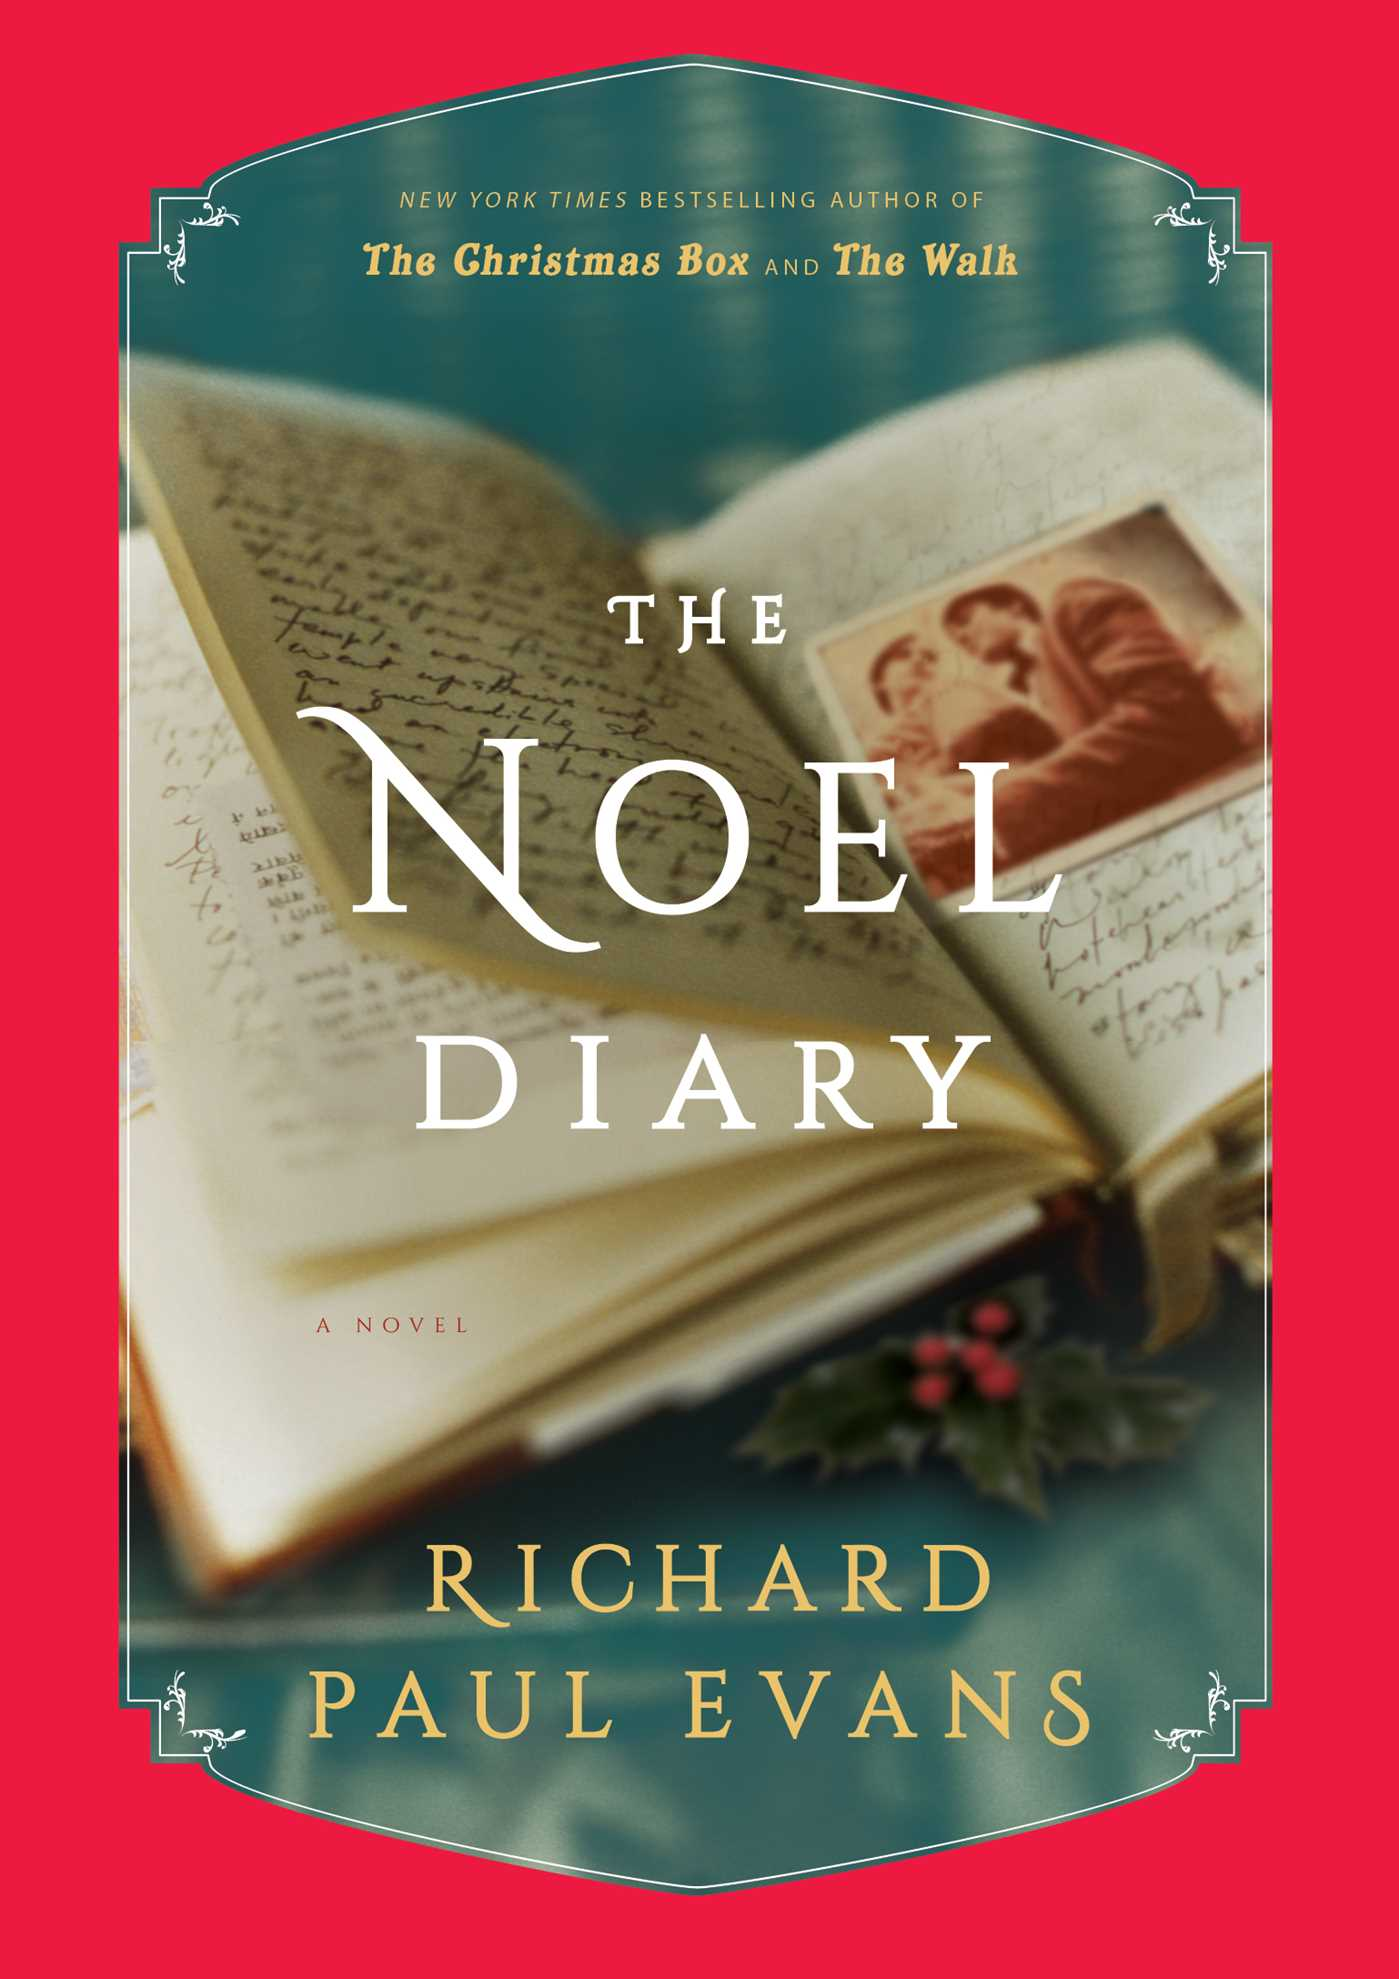 The Noel Diary | Book by Richard Paul Evans | Official